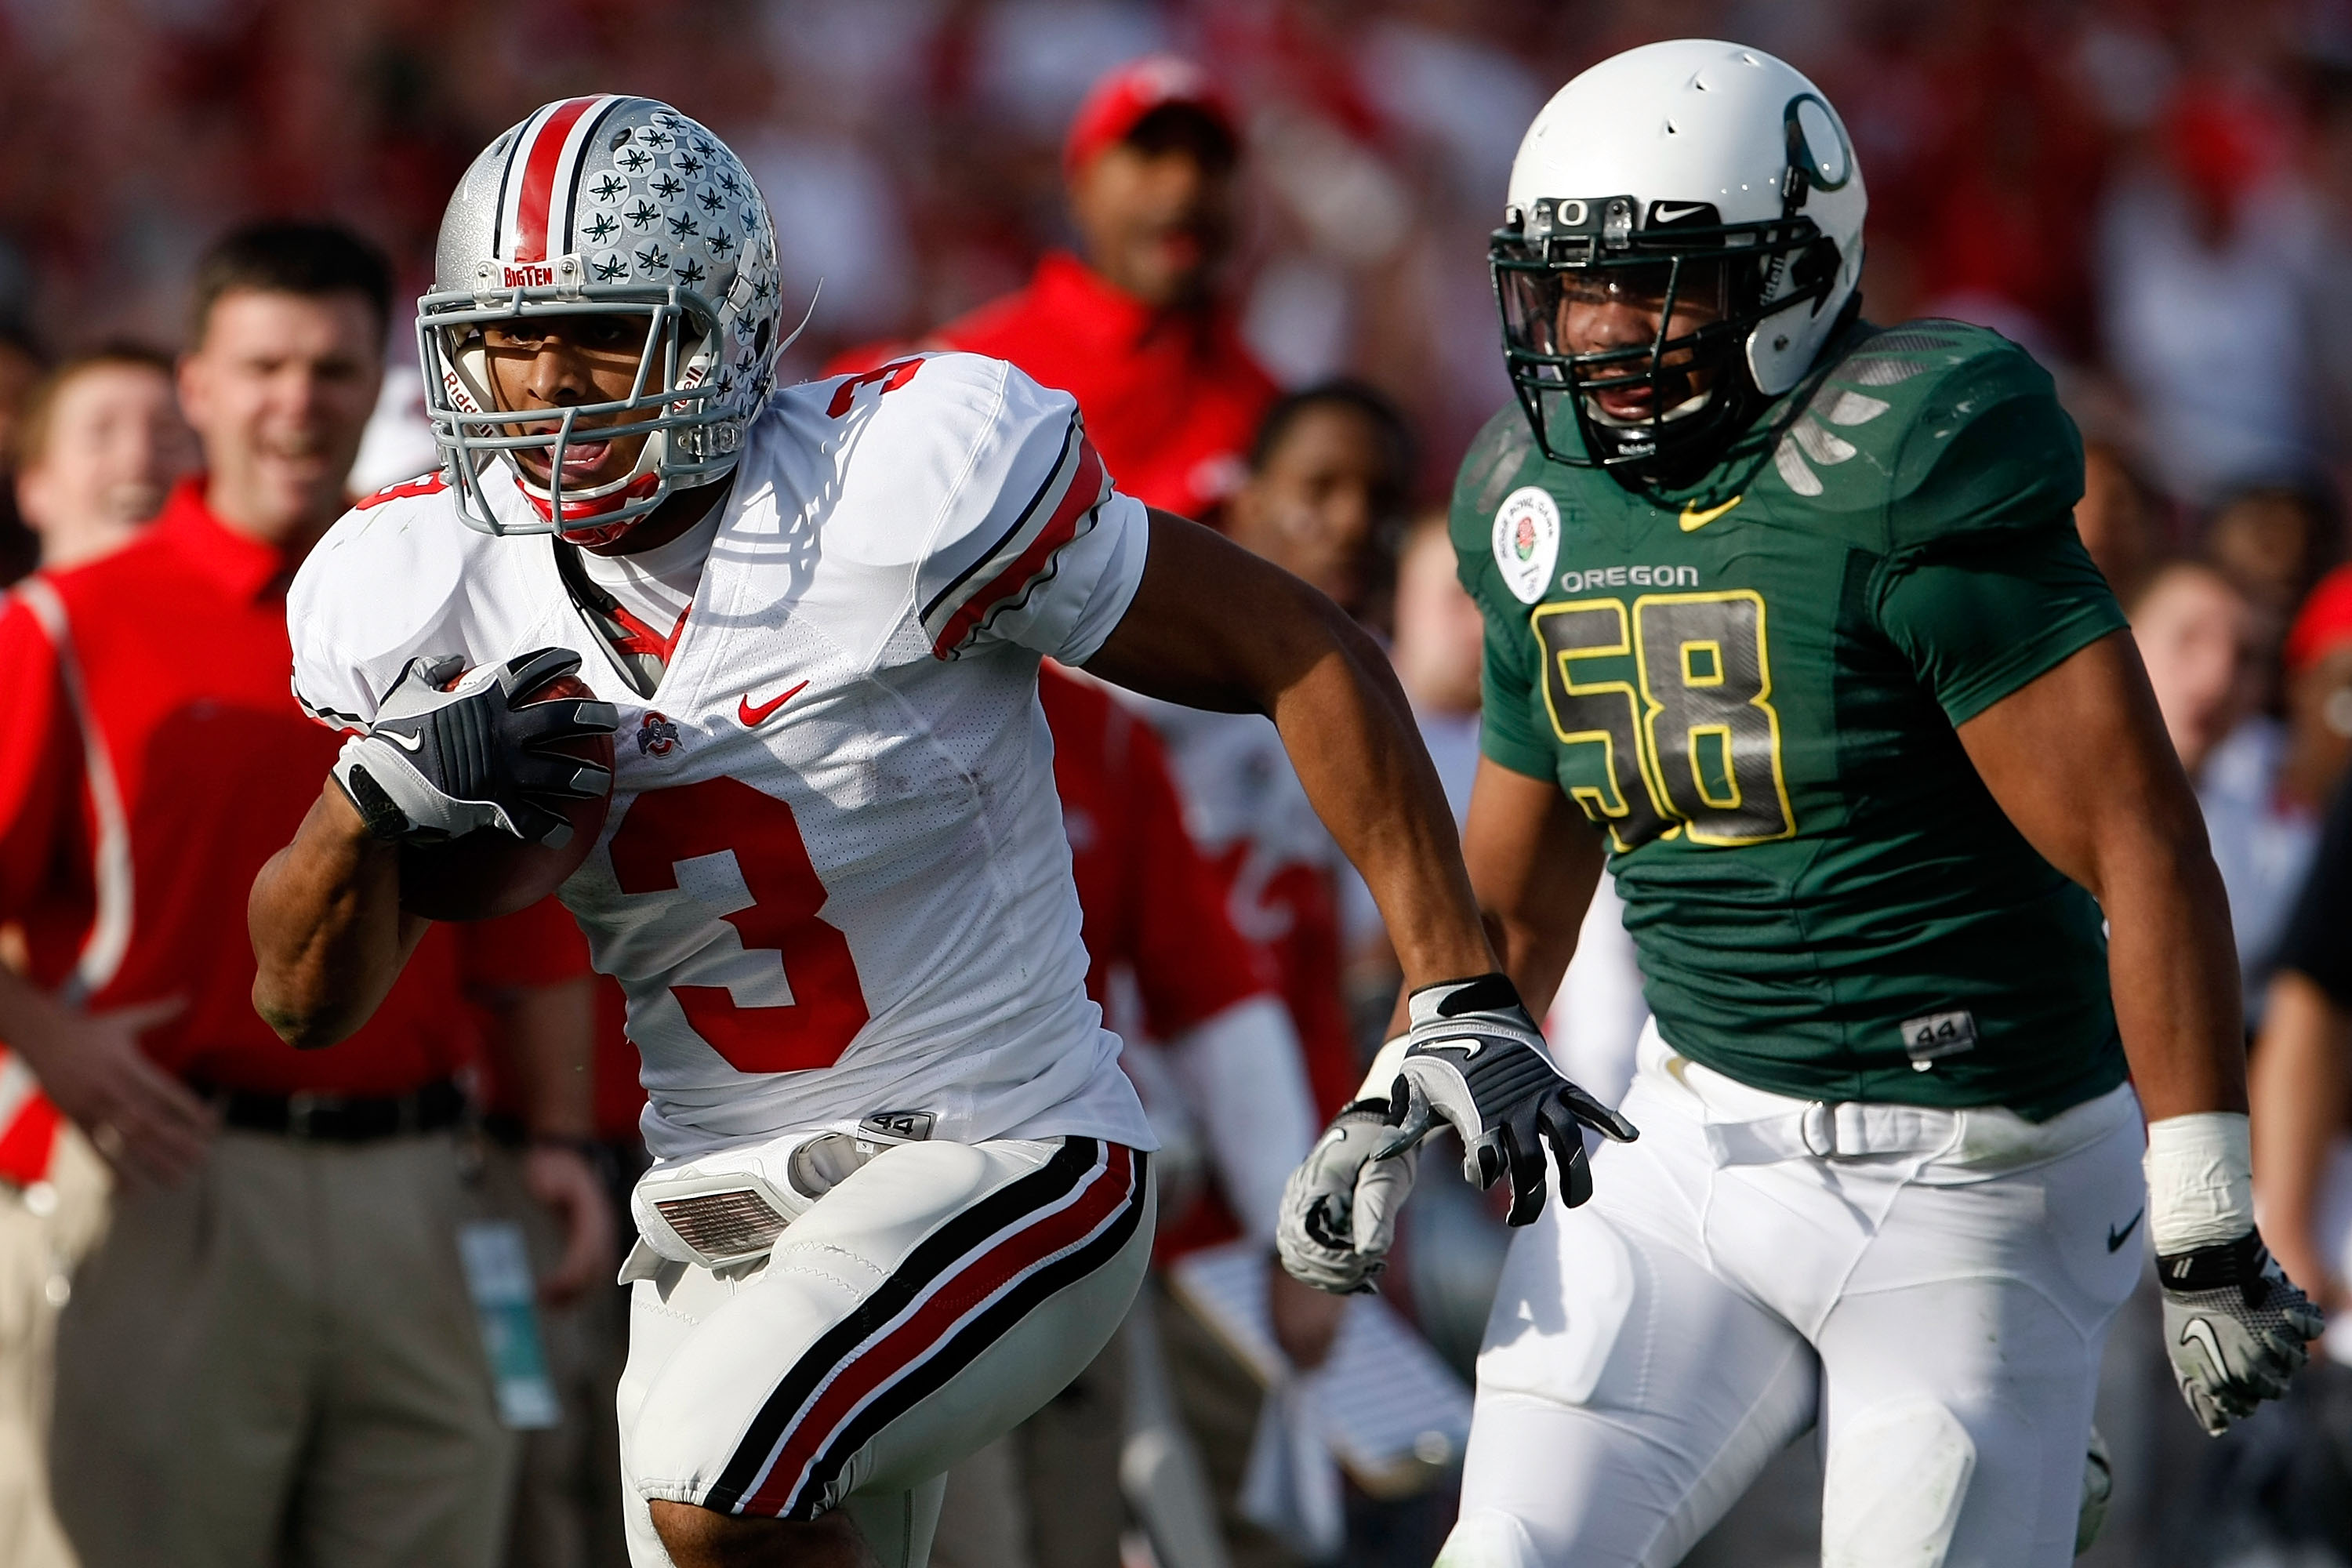 PASADENA, CA - JANUARY 01:  Running back Brandon Saine #3 of the Ohio State Buckeyes runs with the ball making a 46-yard catch against the Oregon Ducks at the 96th Rose Bowl game on January 1, 2010 in Pasadena, California.  (Photo by Jeff Gross/Getty Imag